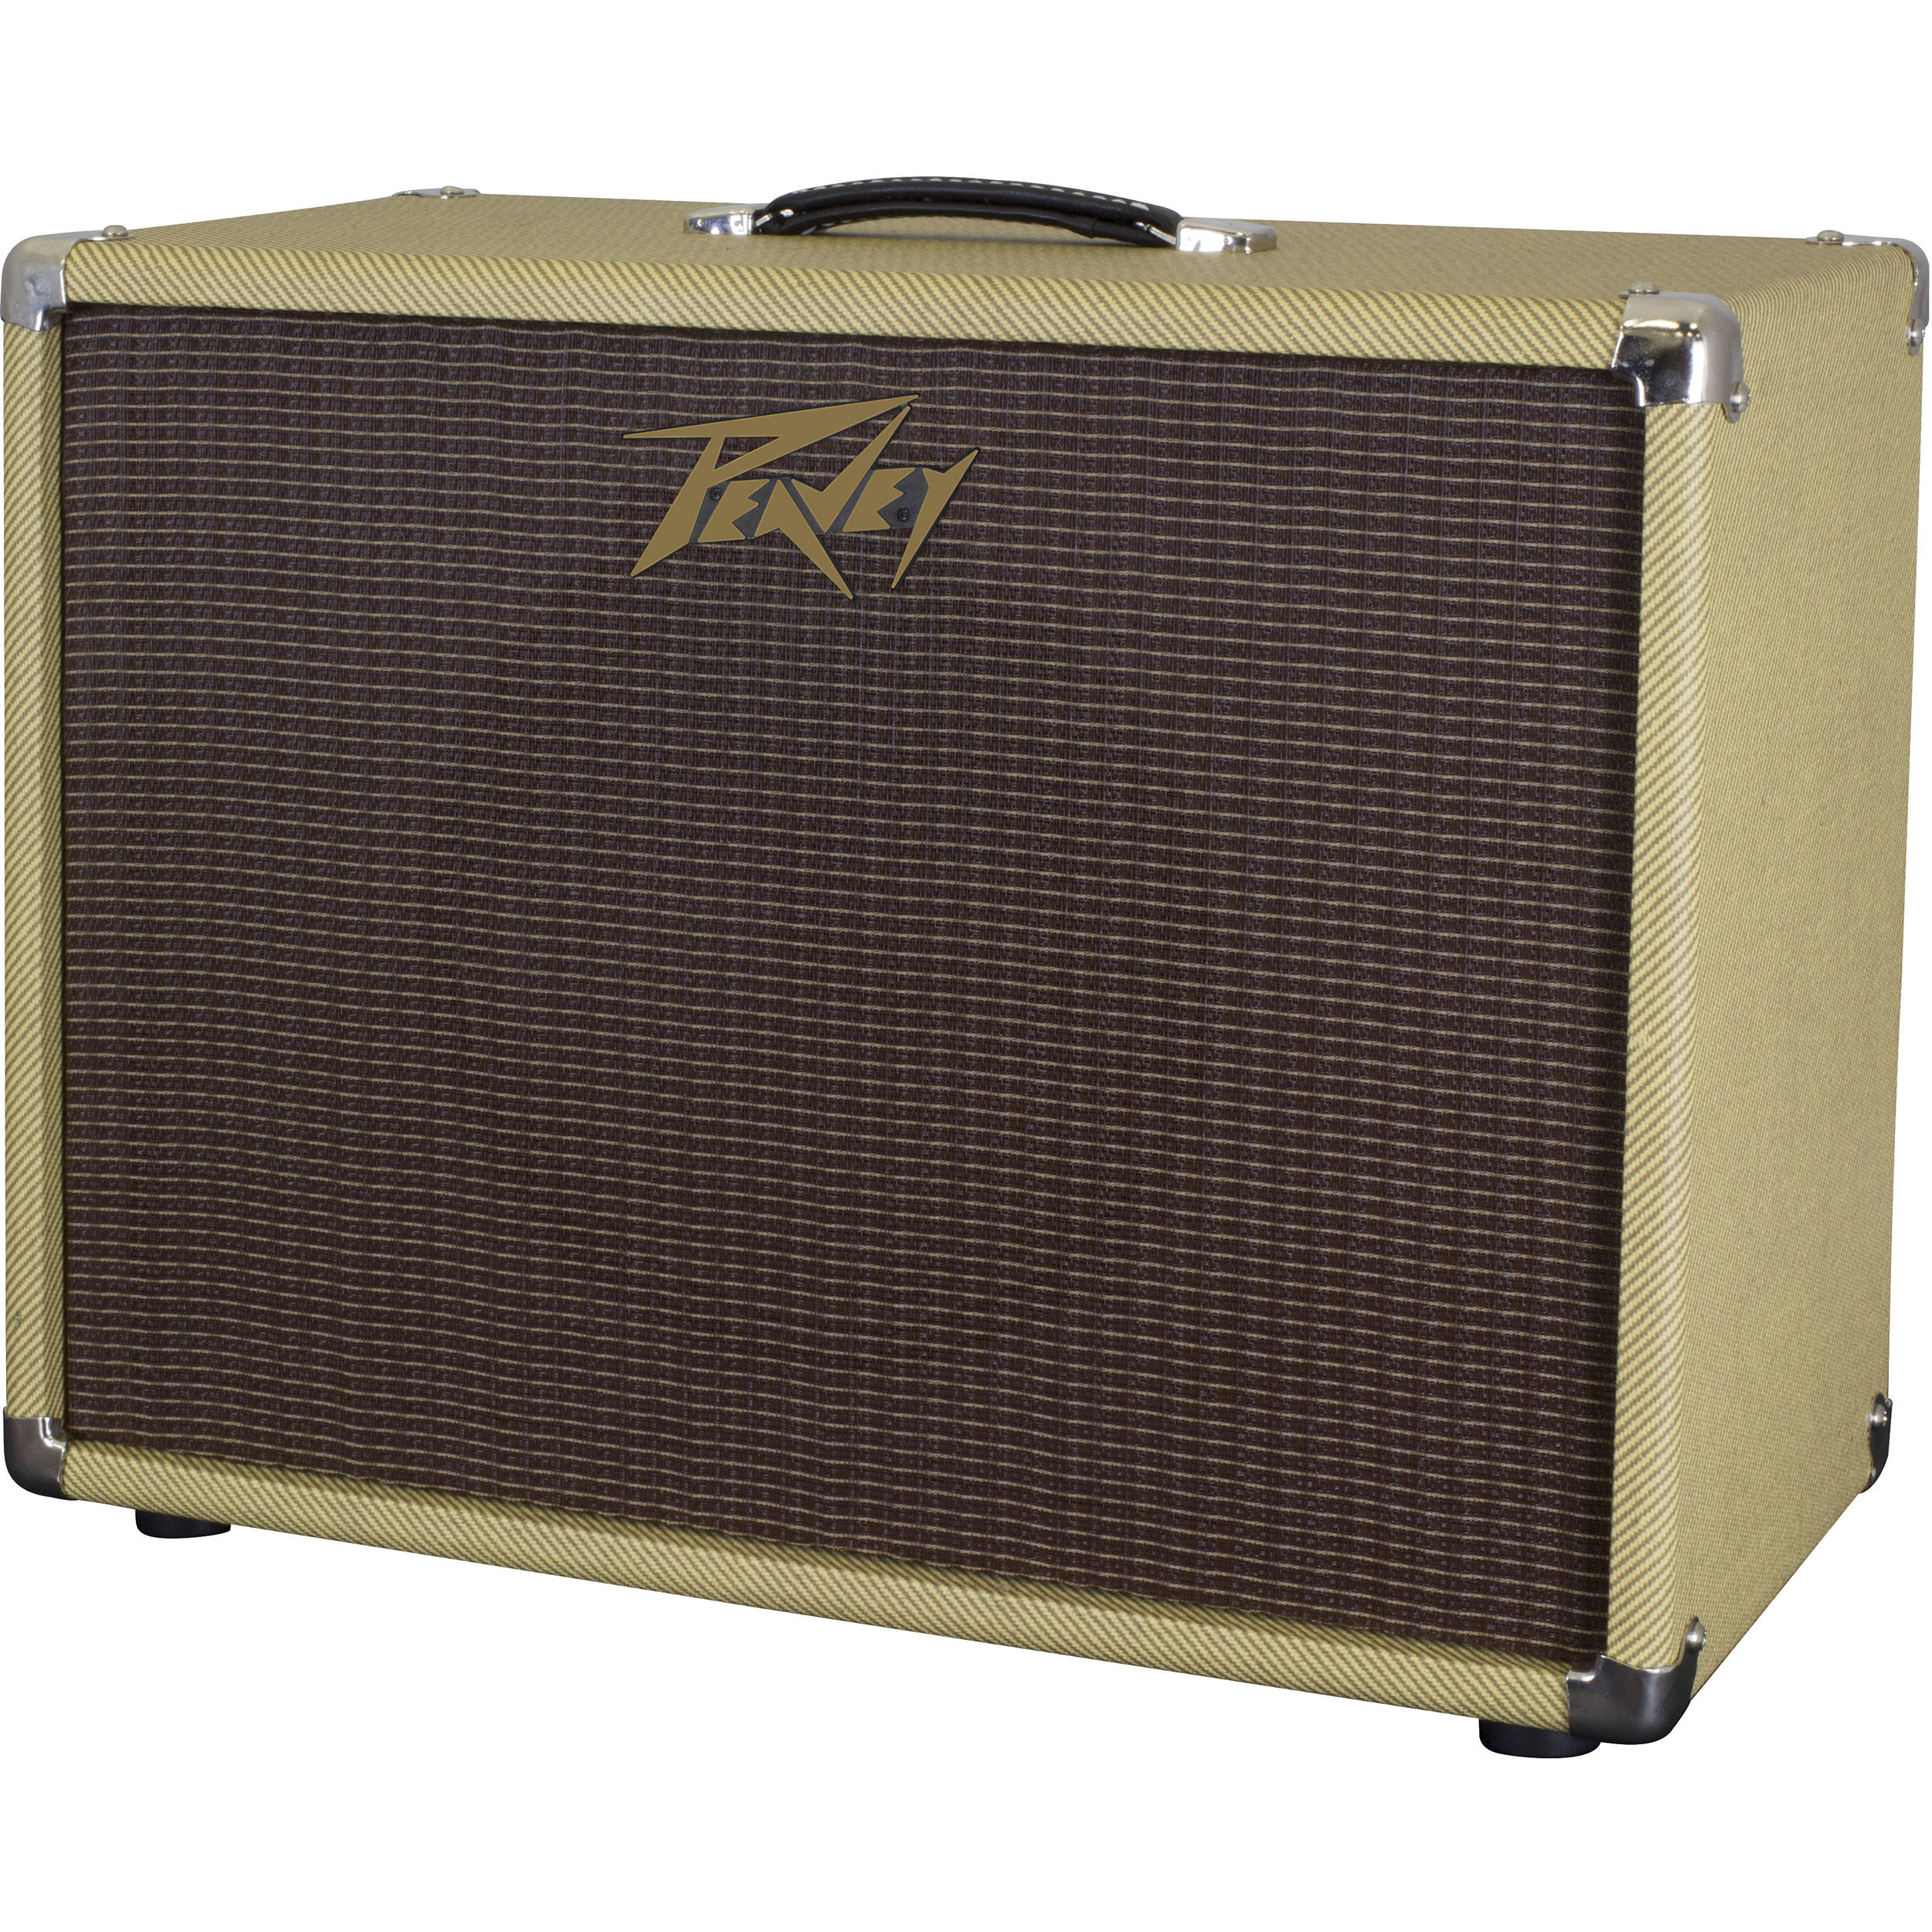 peavey 112 c guitar enclosure 1x12 classic 20 mini amp head extension cabinet 14367649093 ebay. Black Bedroom Furniture Sets. Home Design Ideas